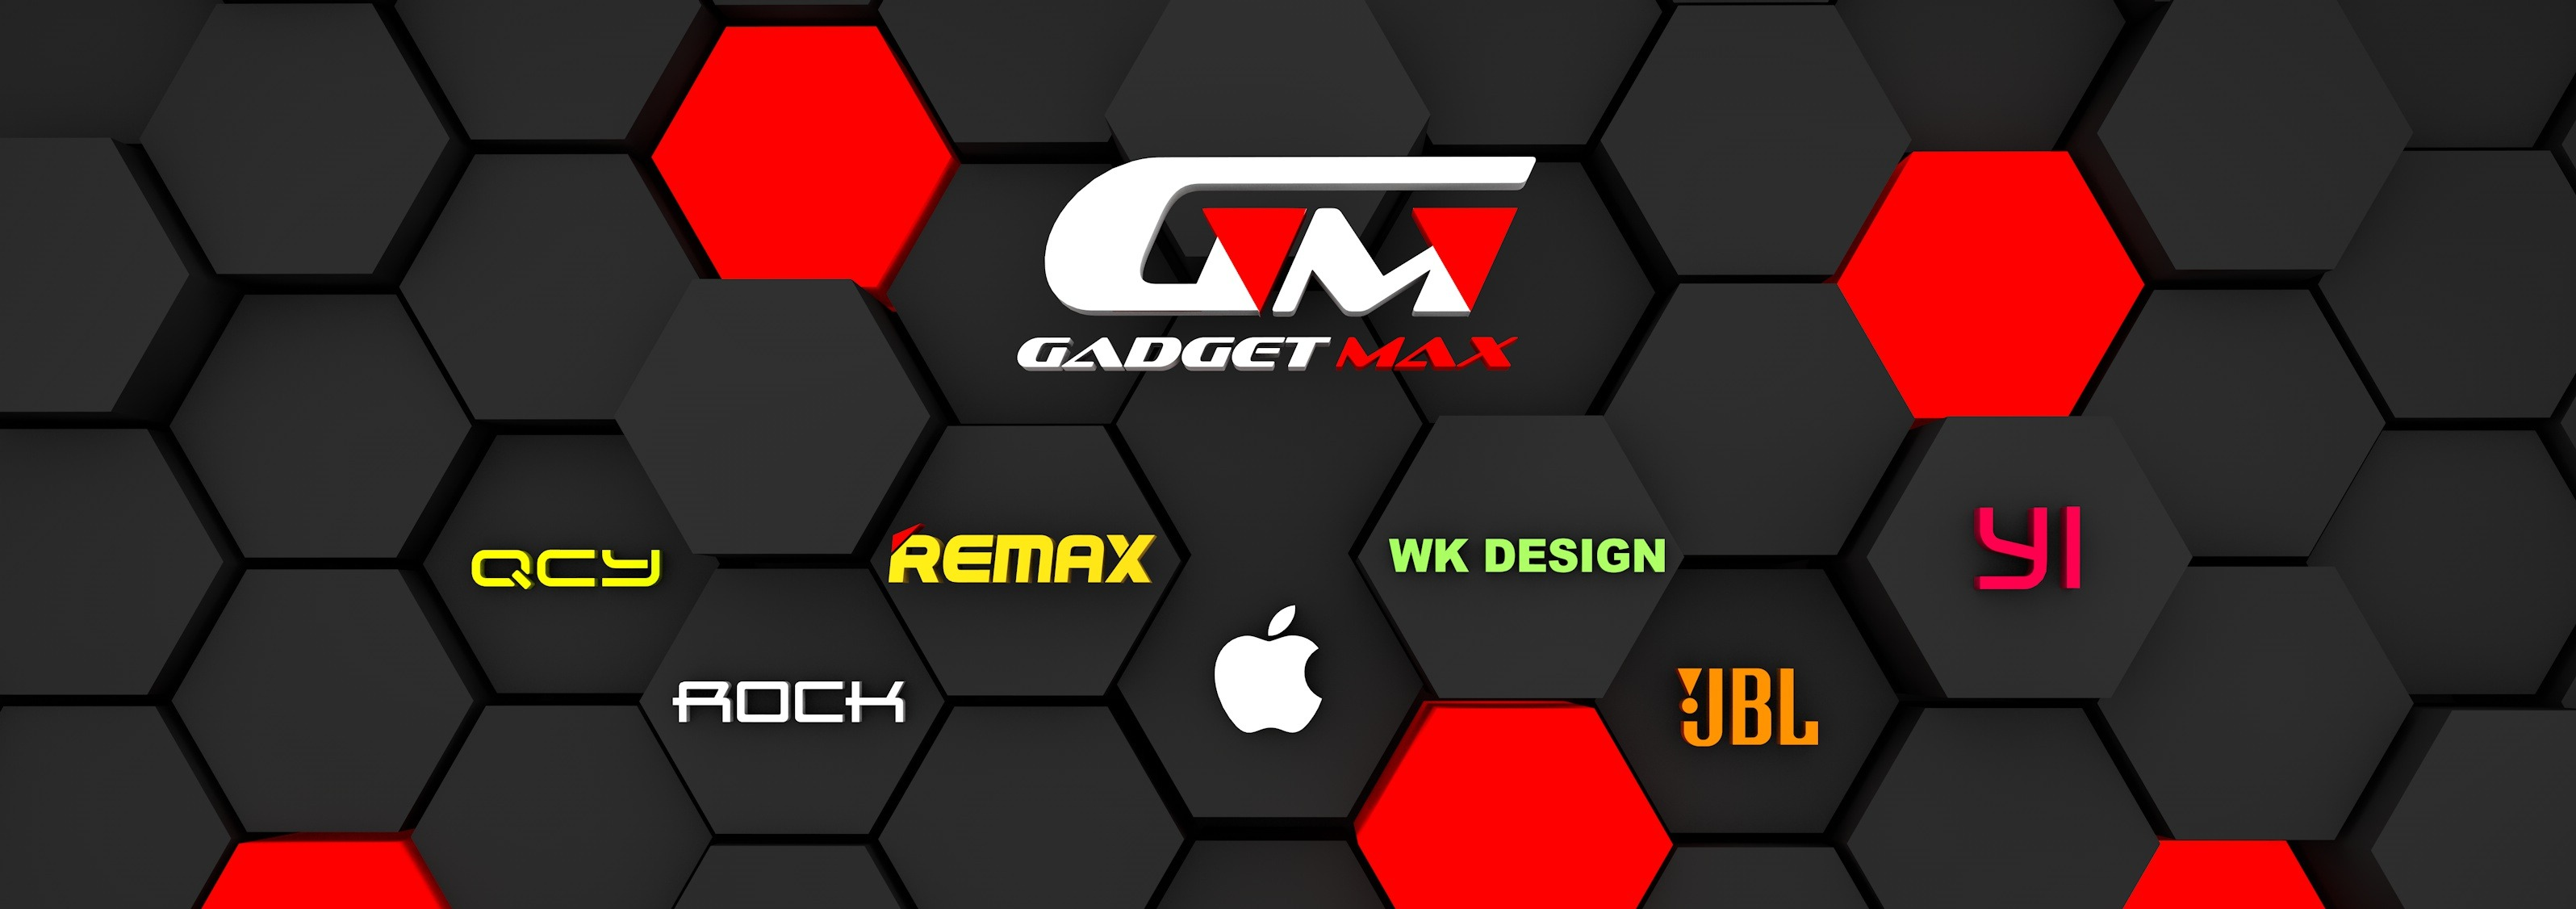 Gadget Max Myanmar Co.,Ltd